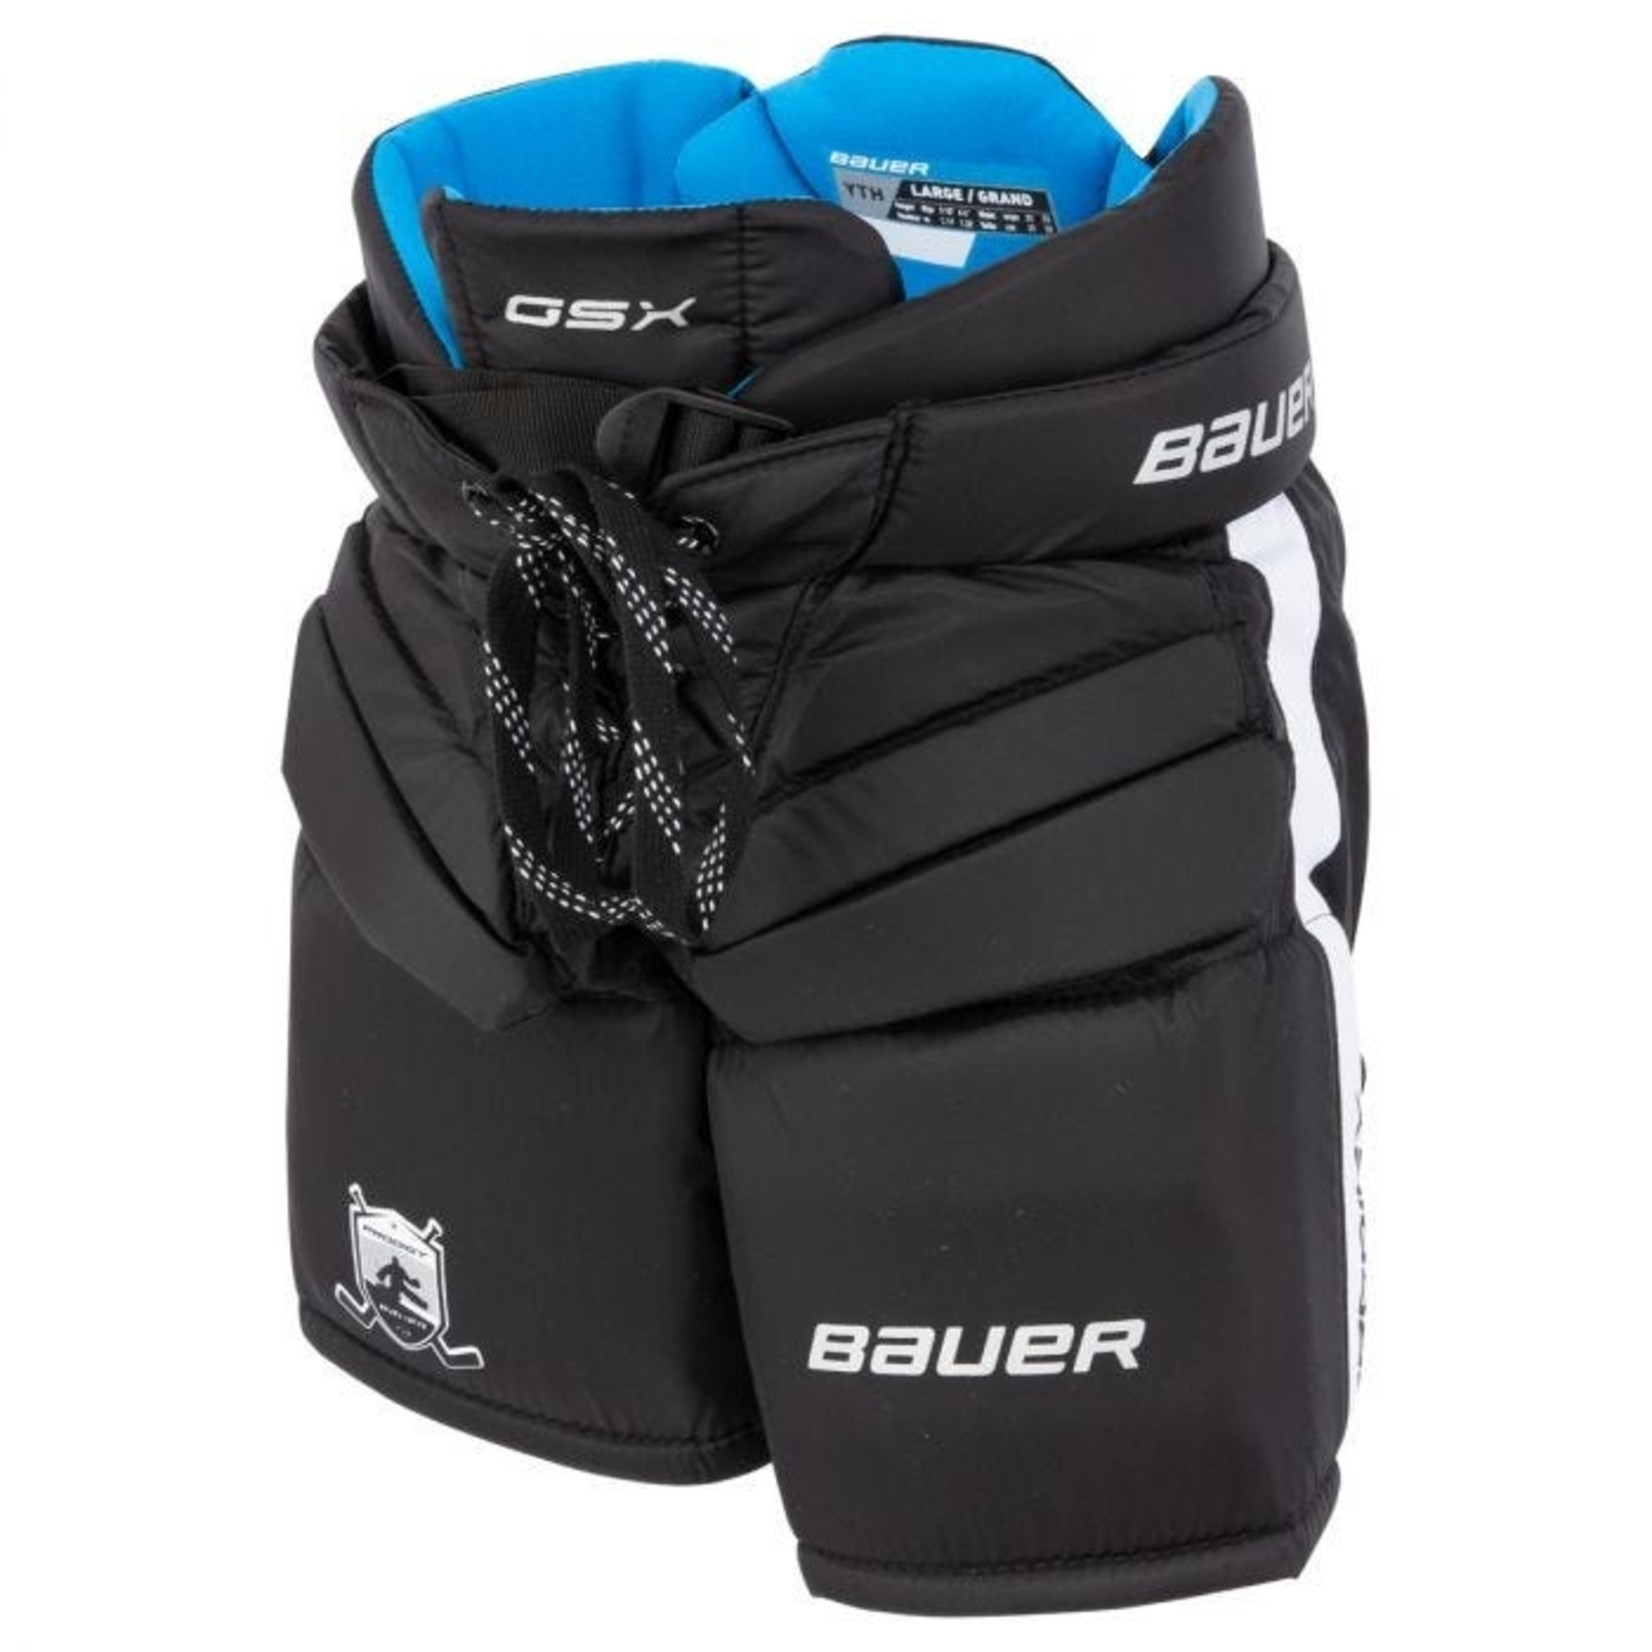 Bauer Bauer Hockey Goal Pants, GSX Prodigy, Youth